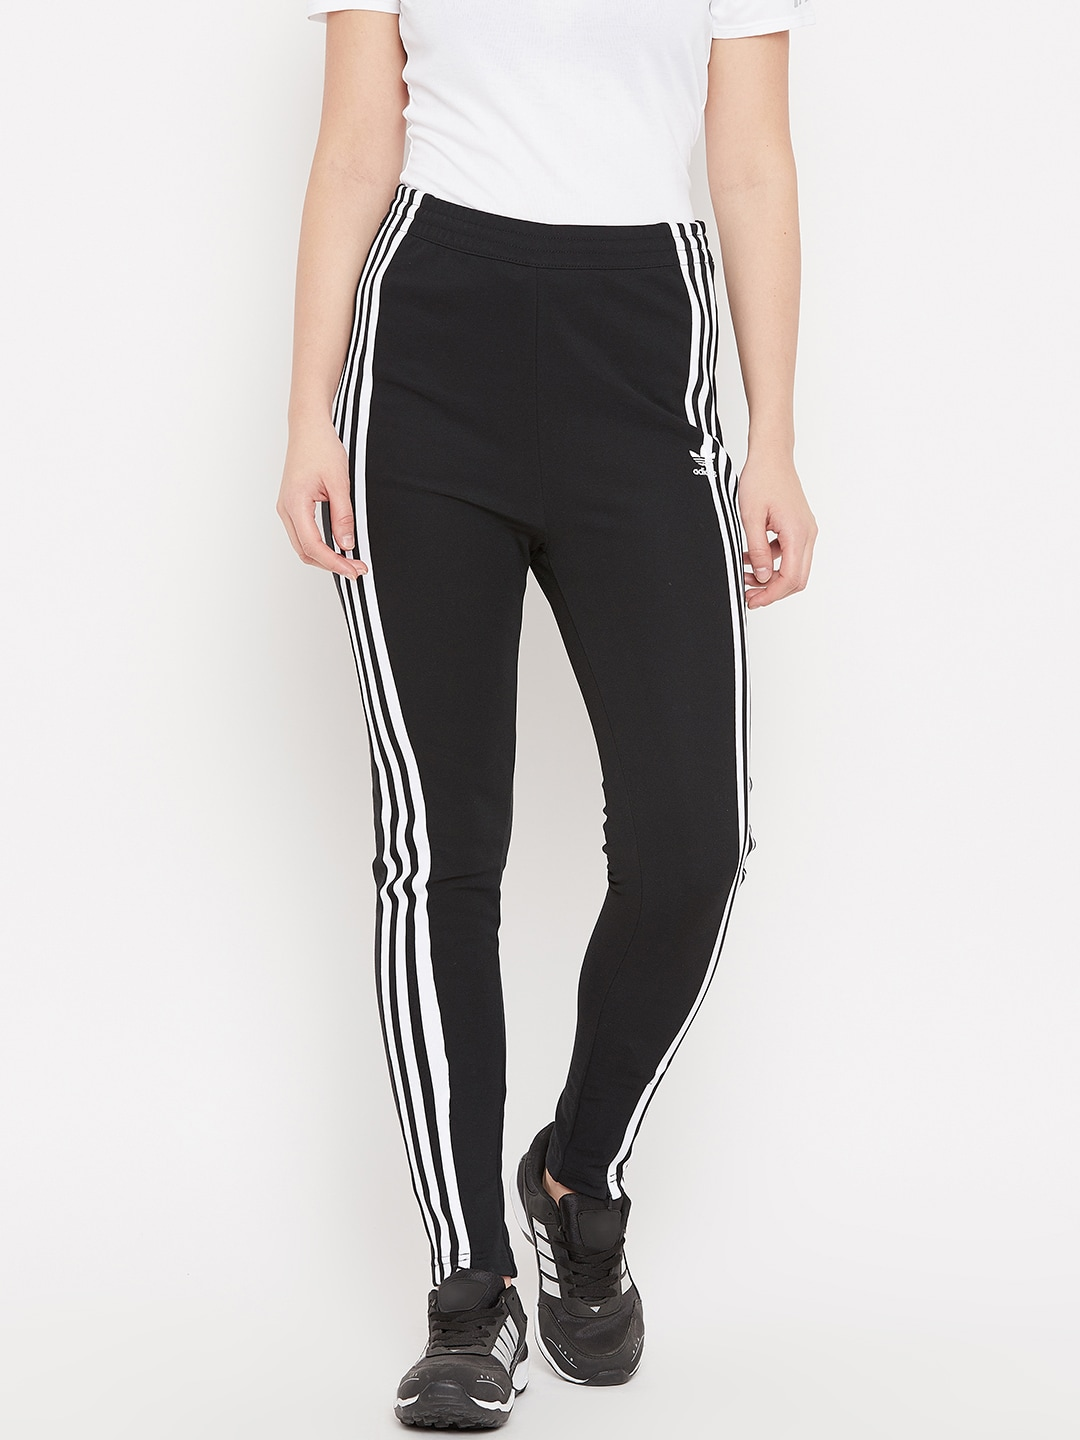 a1ad99543 Women Adidas Originals Track Pants Trousers - Buy Women Adidas Originals  Track Pants Trousers online in India